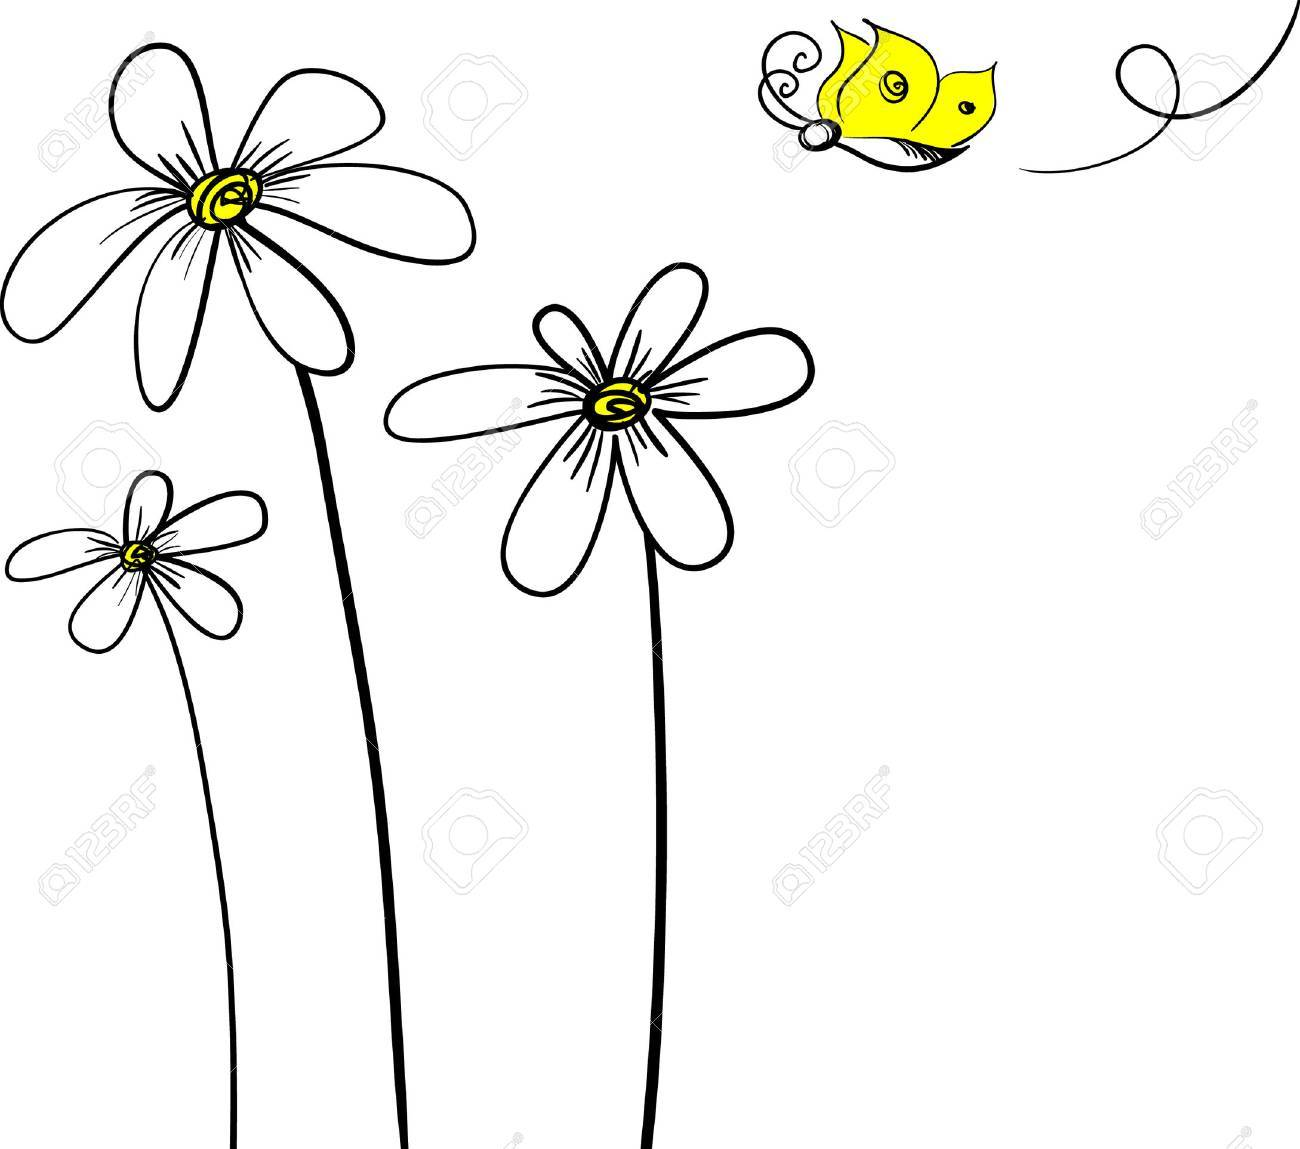 flower background.Easy to edit layers. - 5857482